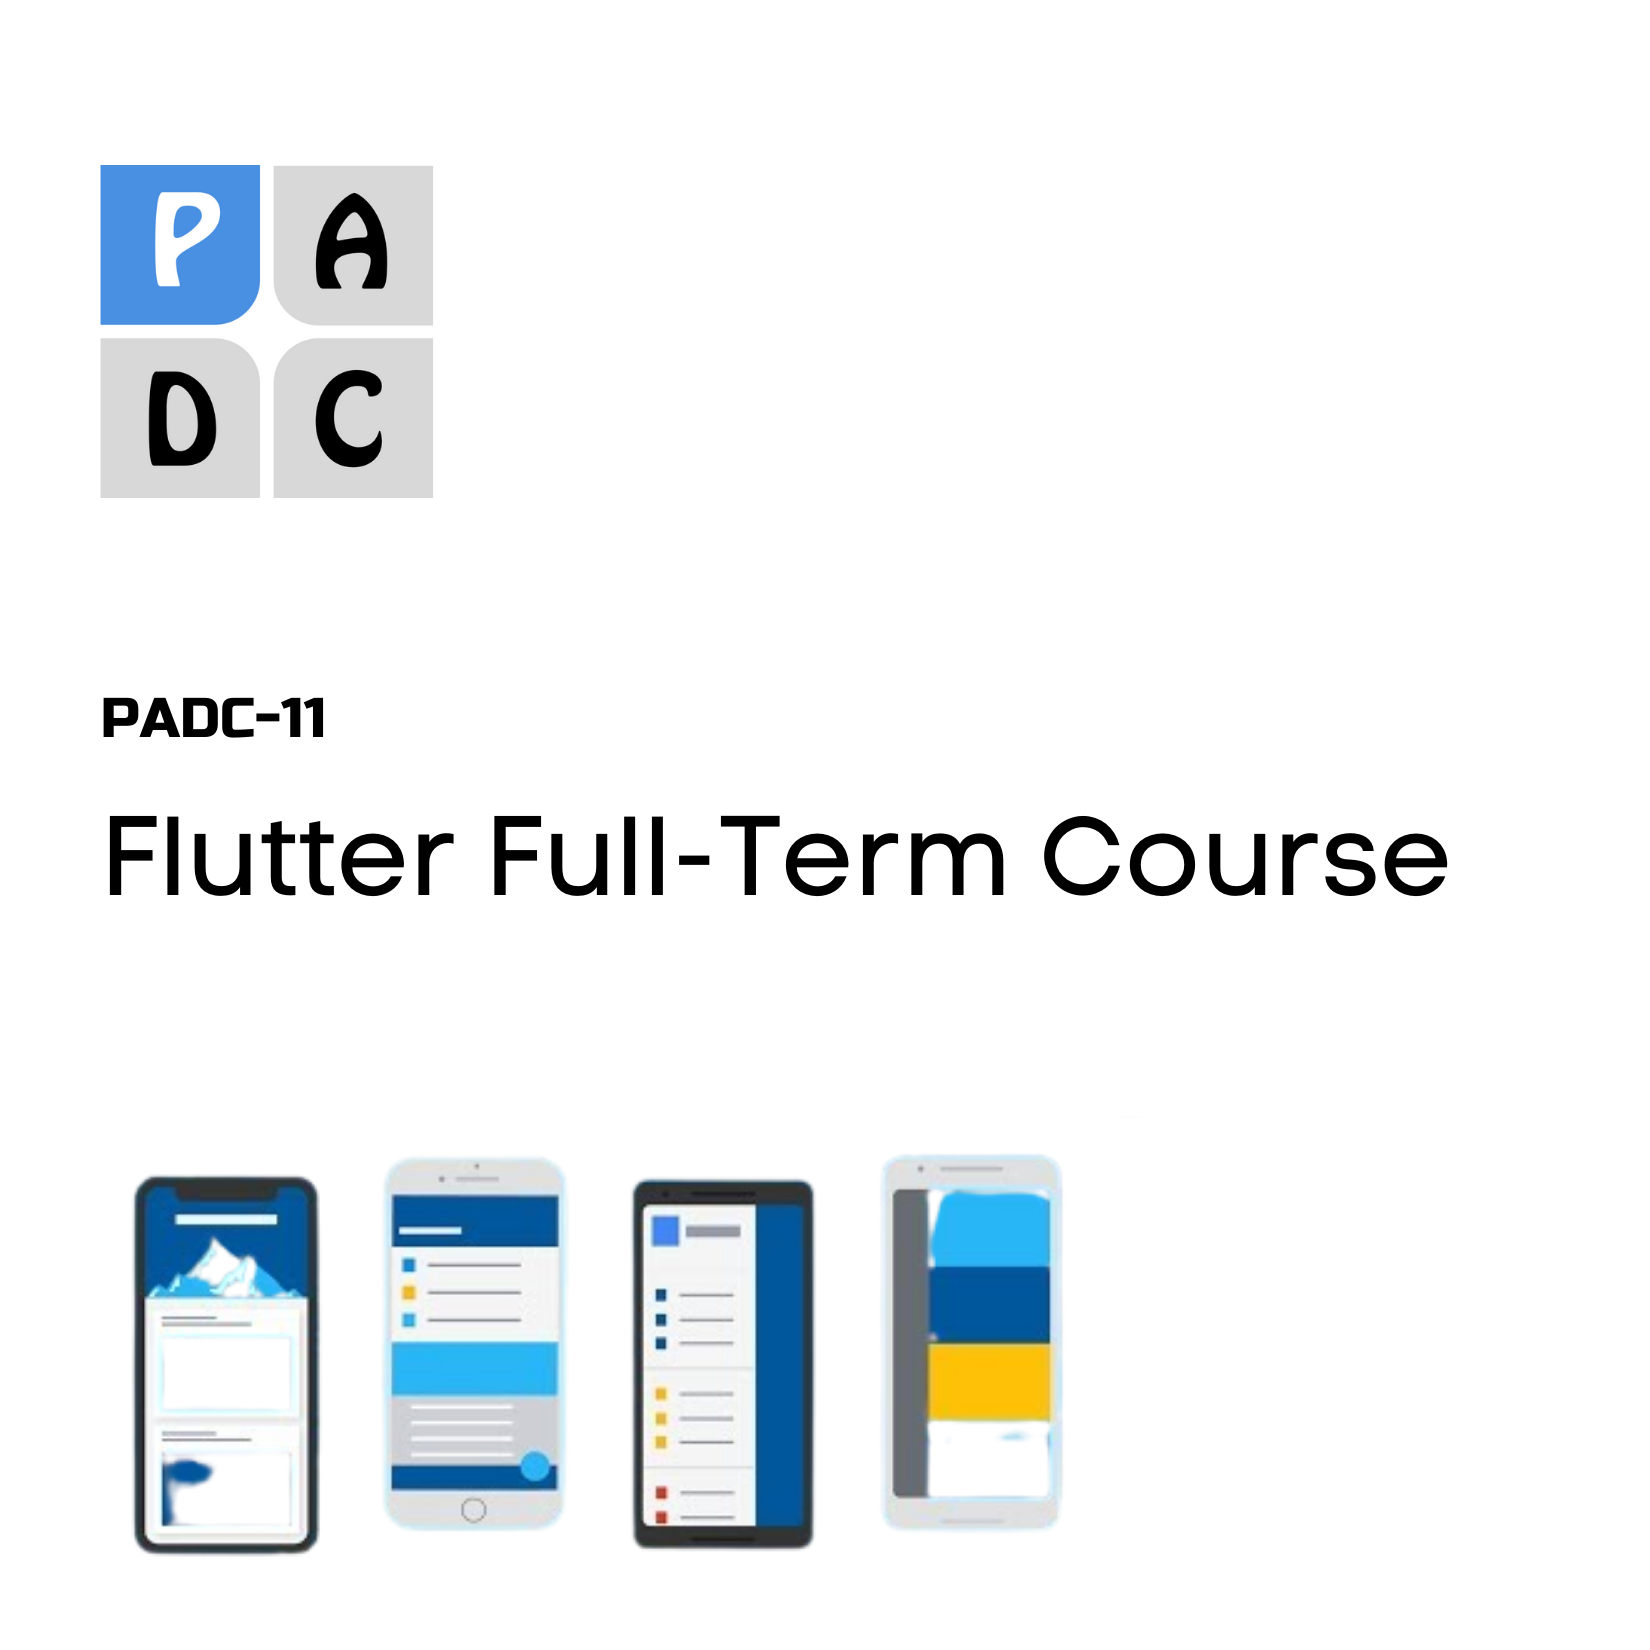 PADC-11 Flutter FTC